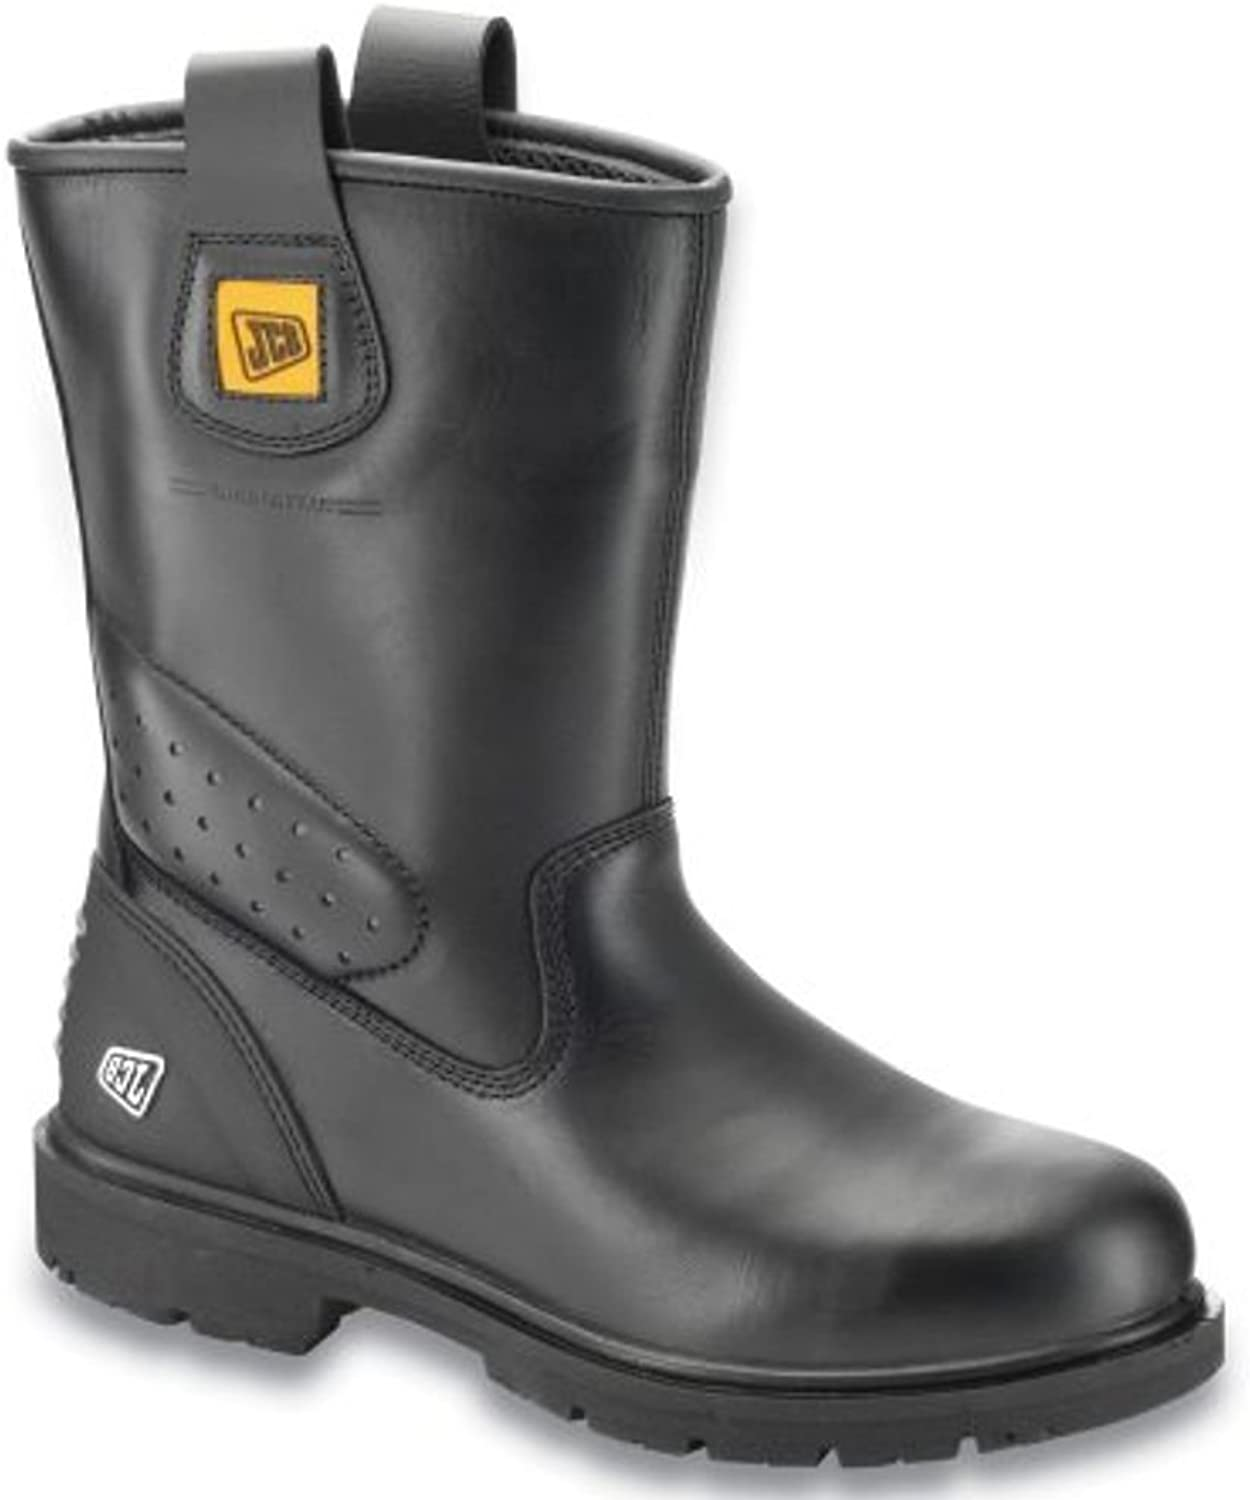 JCB Trackpro B Rigger Boot Size 6